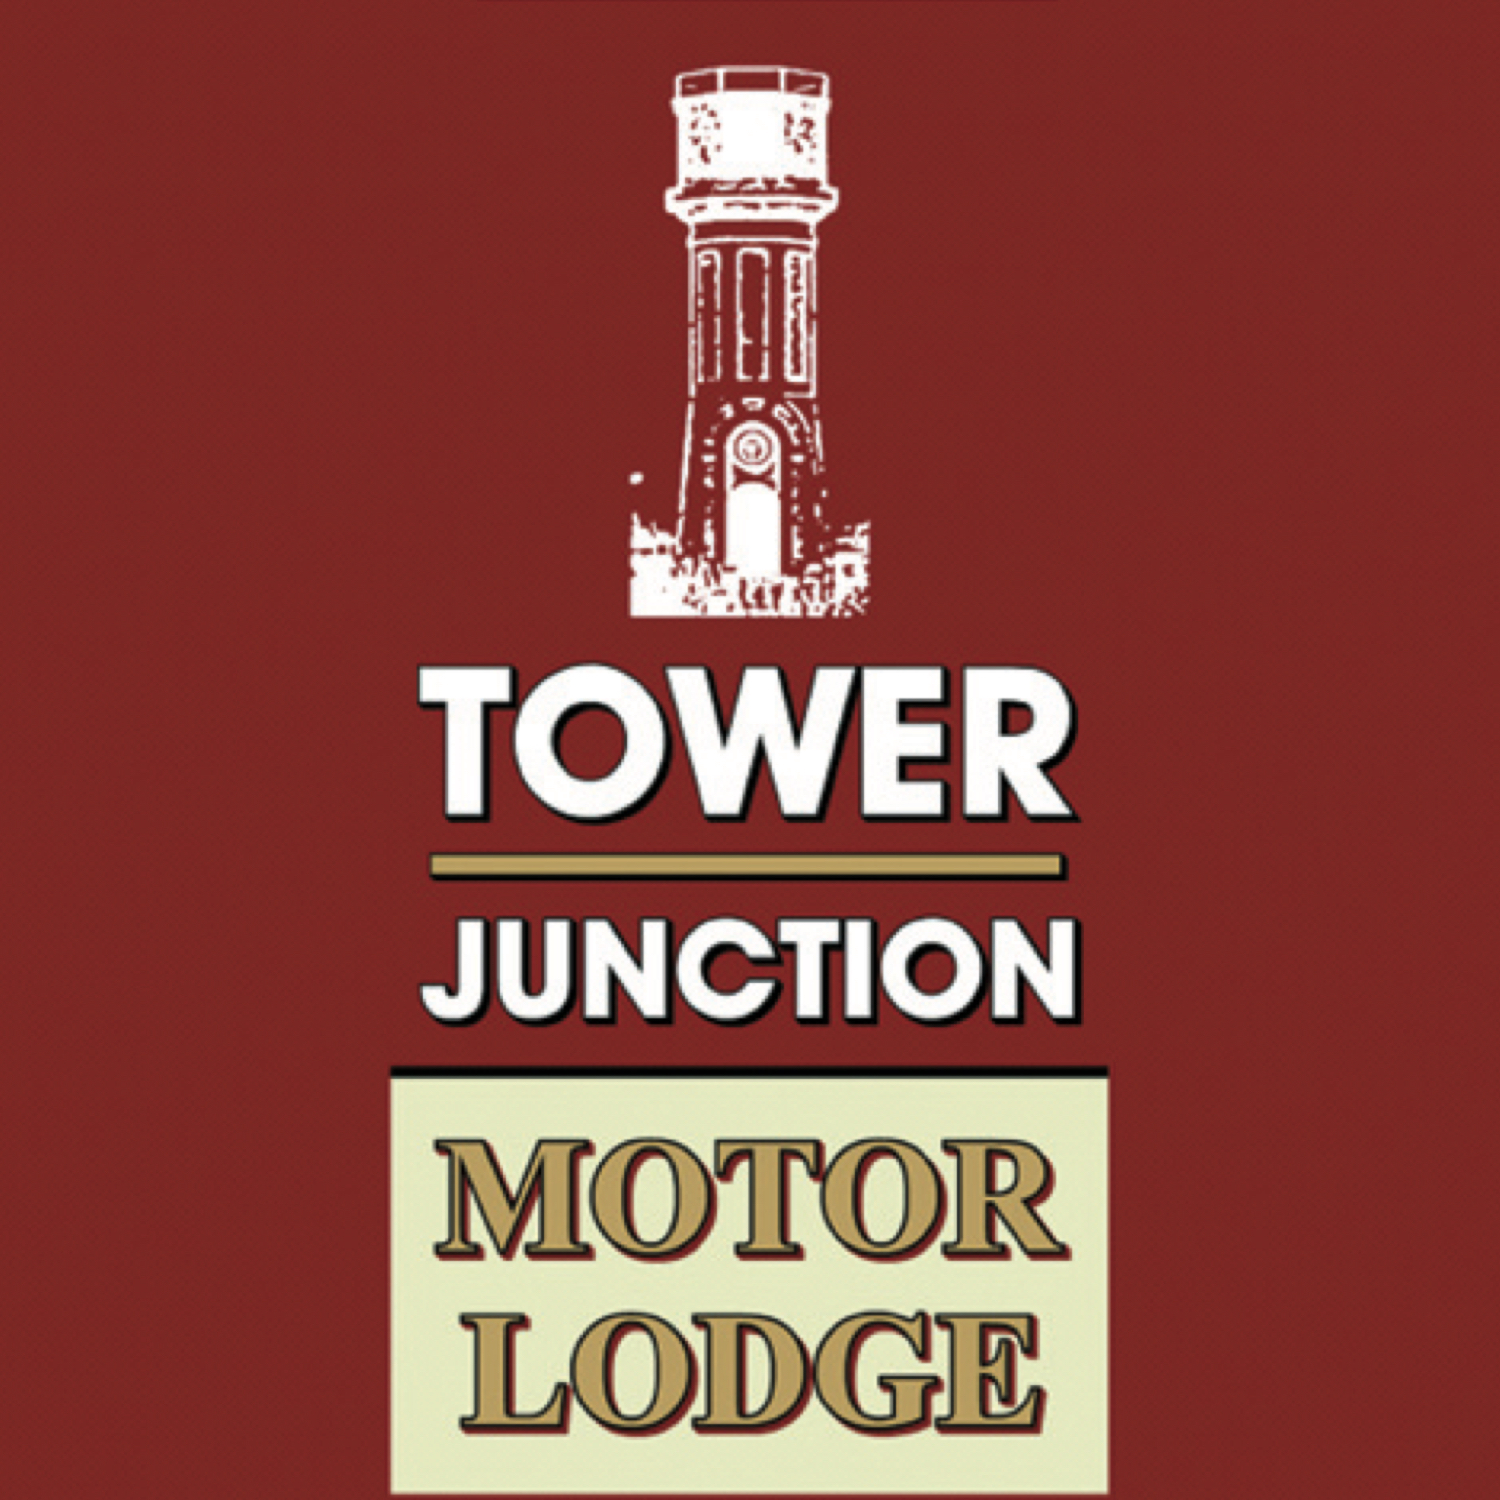 Tower Junction Motor Lodge - New Zealand